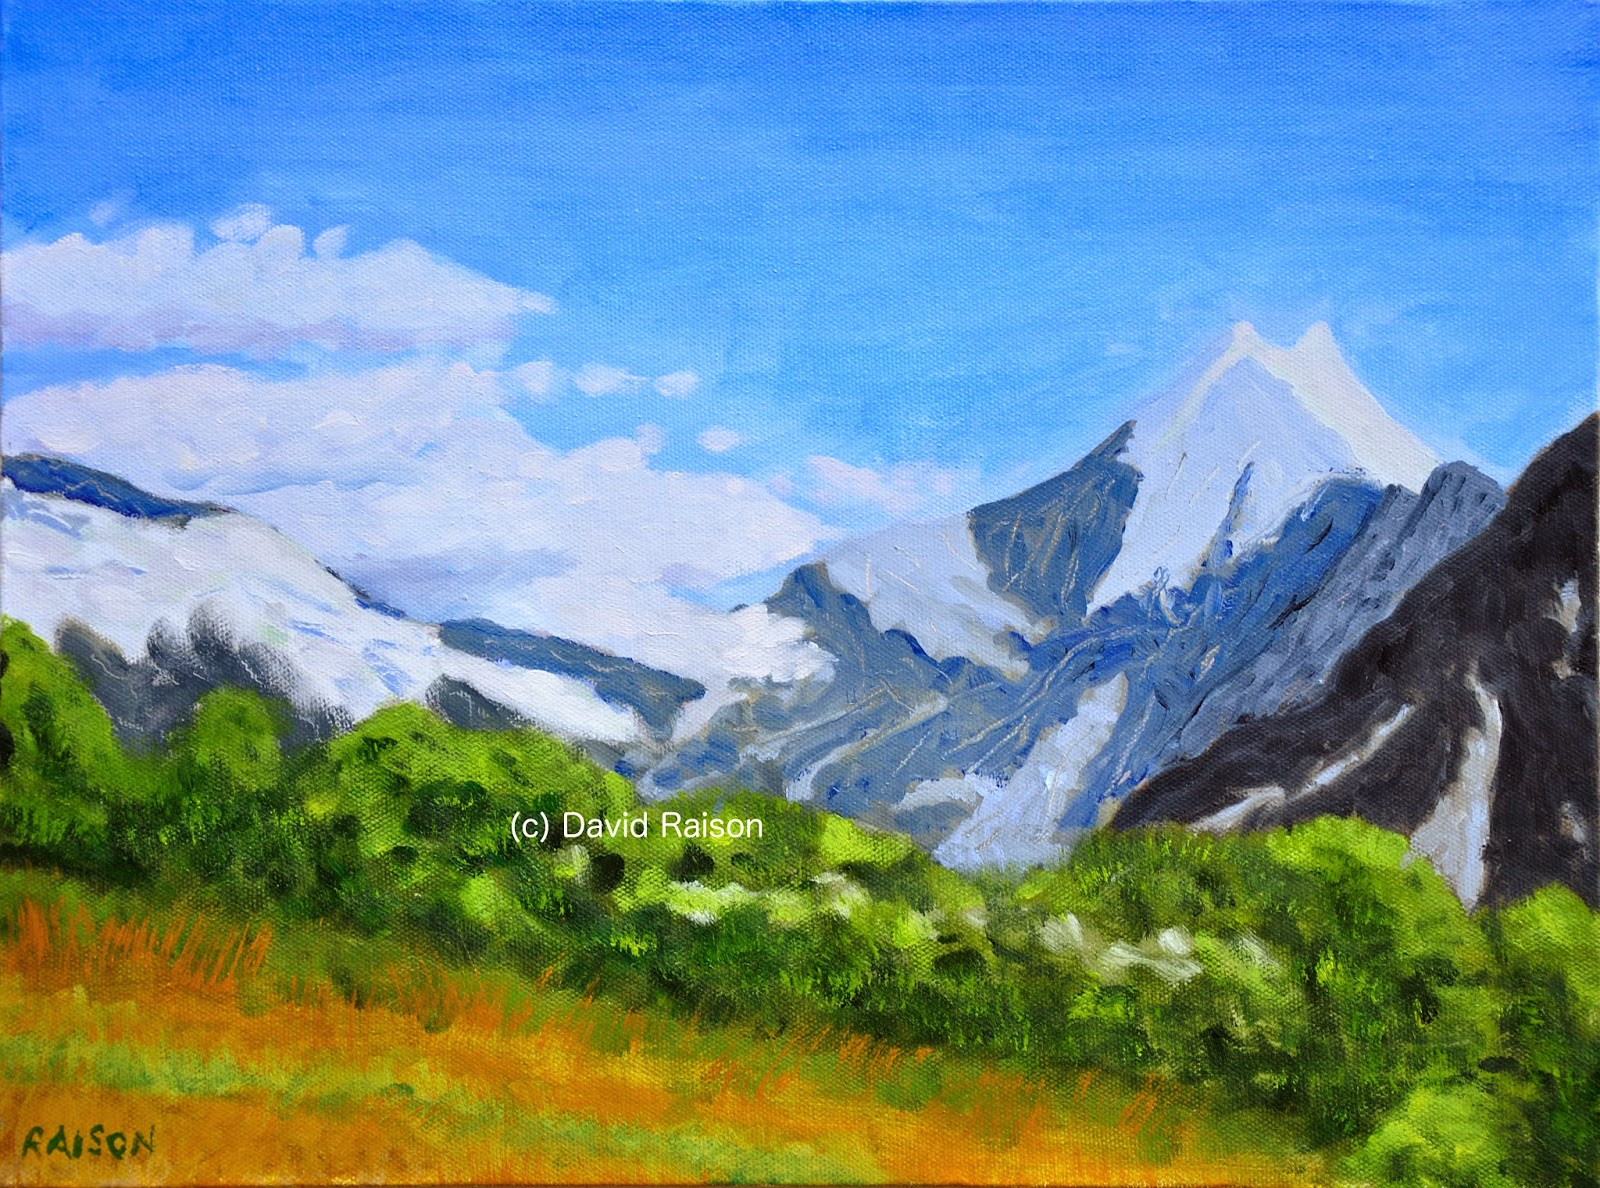 David raisons art blog mount cook painting for sale mount cook is now ready for sale via my website at davidraison heres a view of the painting its in oils on a deep edge canvas so does not publicscrutiny Image collections